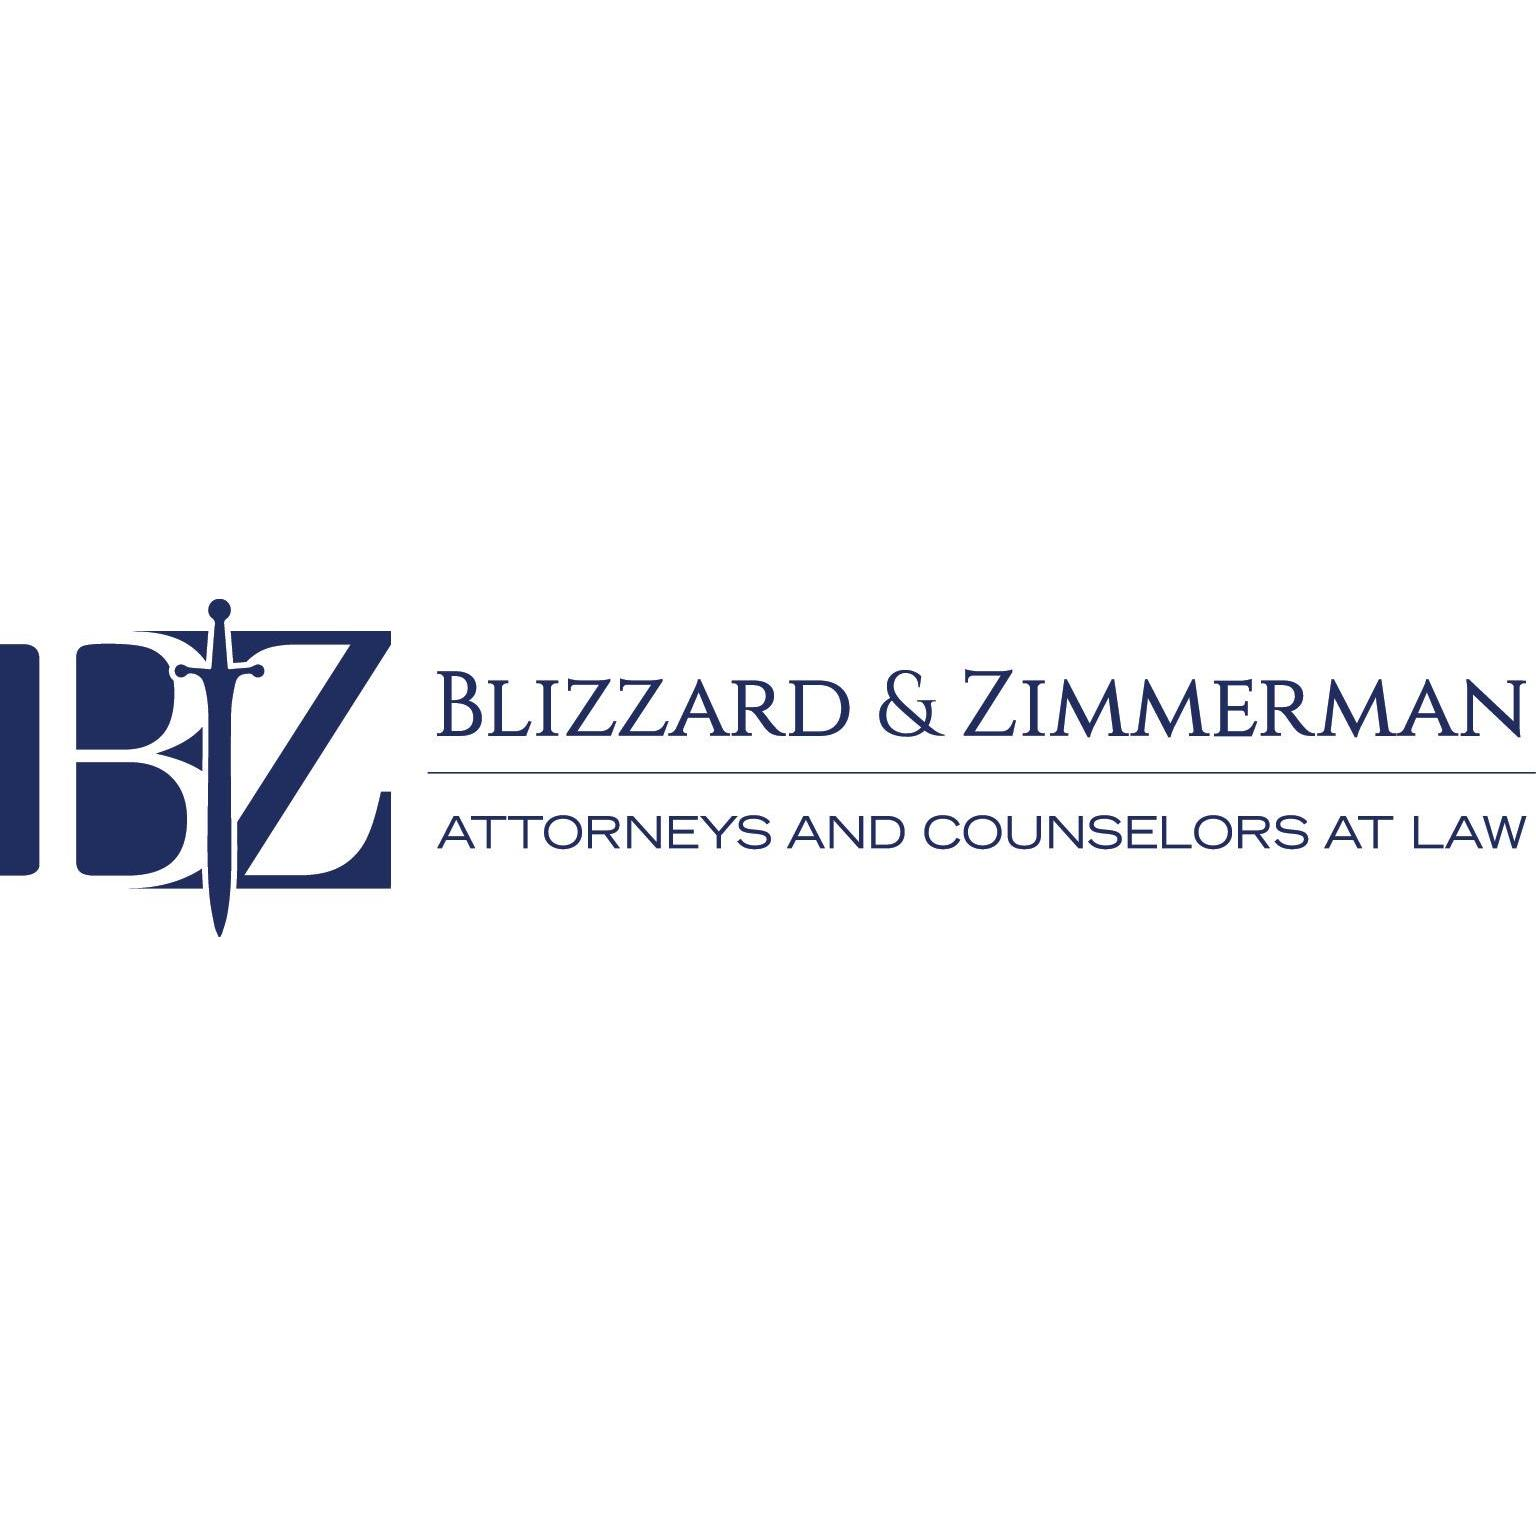 Blizzard & Zimmerman PLLC